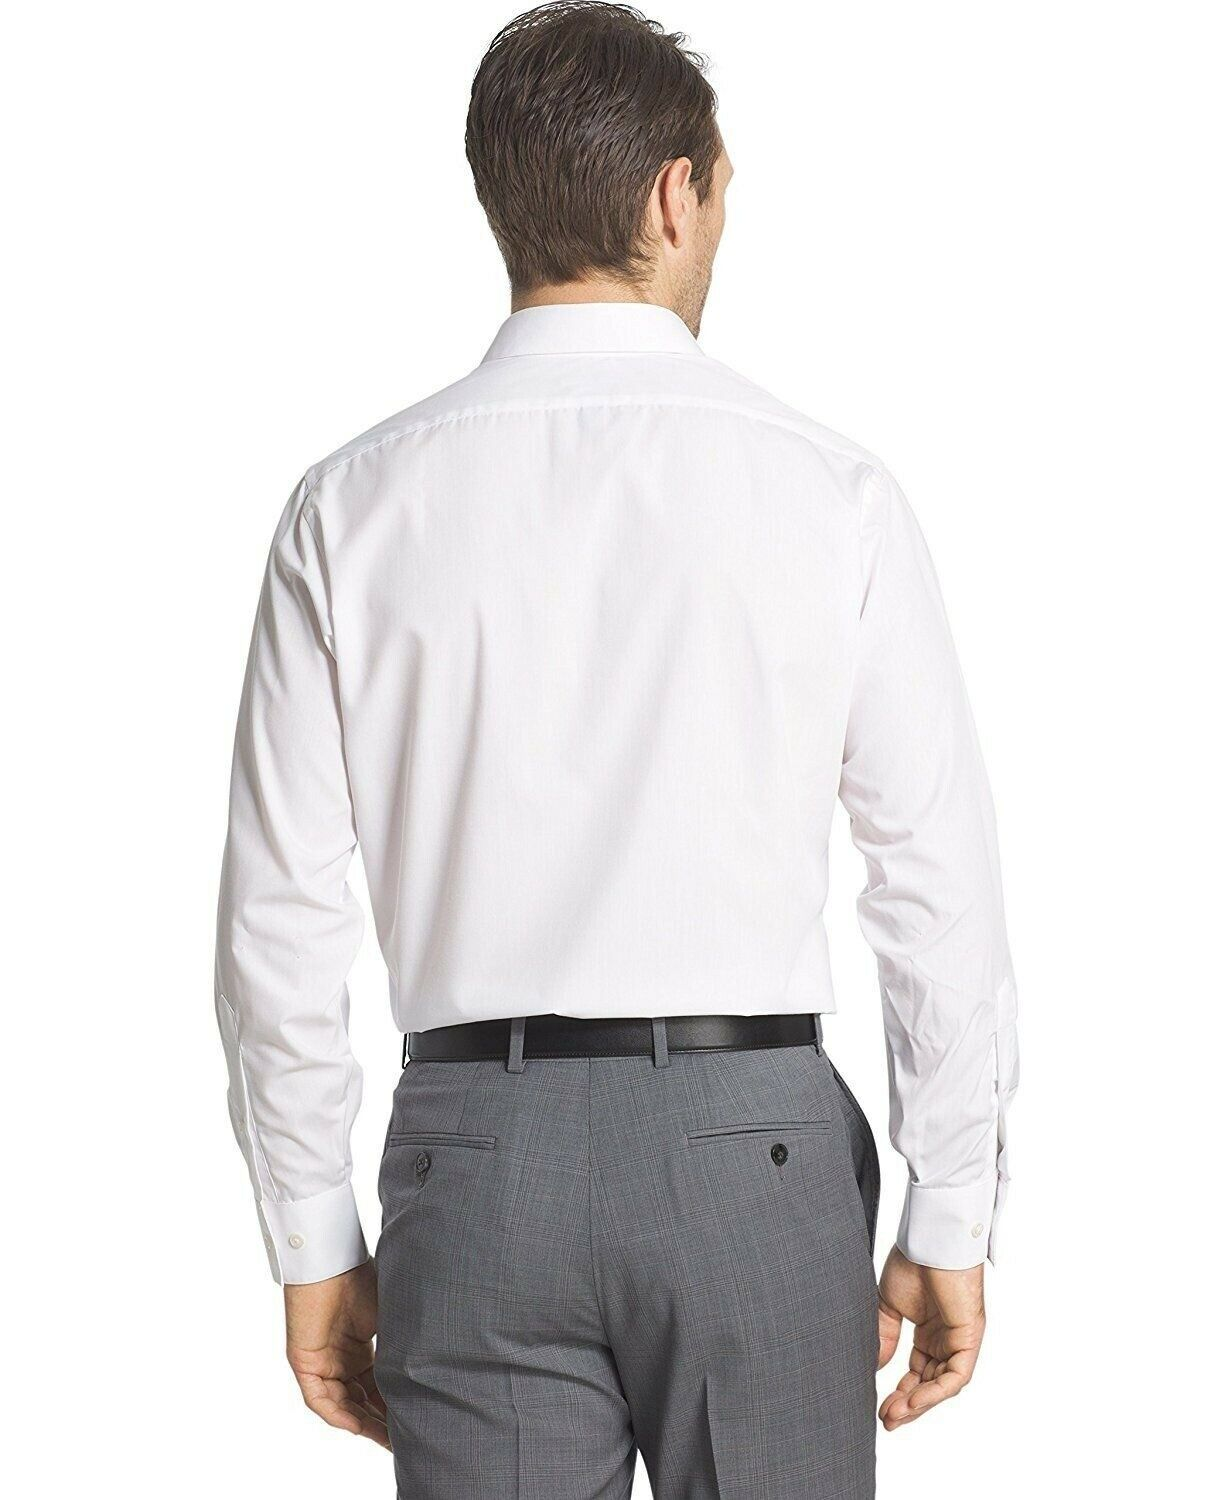 BERLIONI-ITALY-MEN-039-S-PRIME-FRENCH-CONVERTIBLE-CUFF-SOLID-DRESS-SHIRT-WHITE thumbnail 35